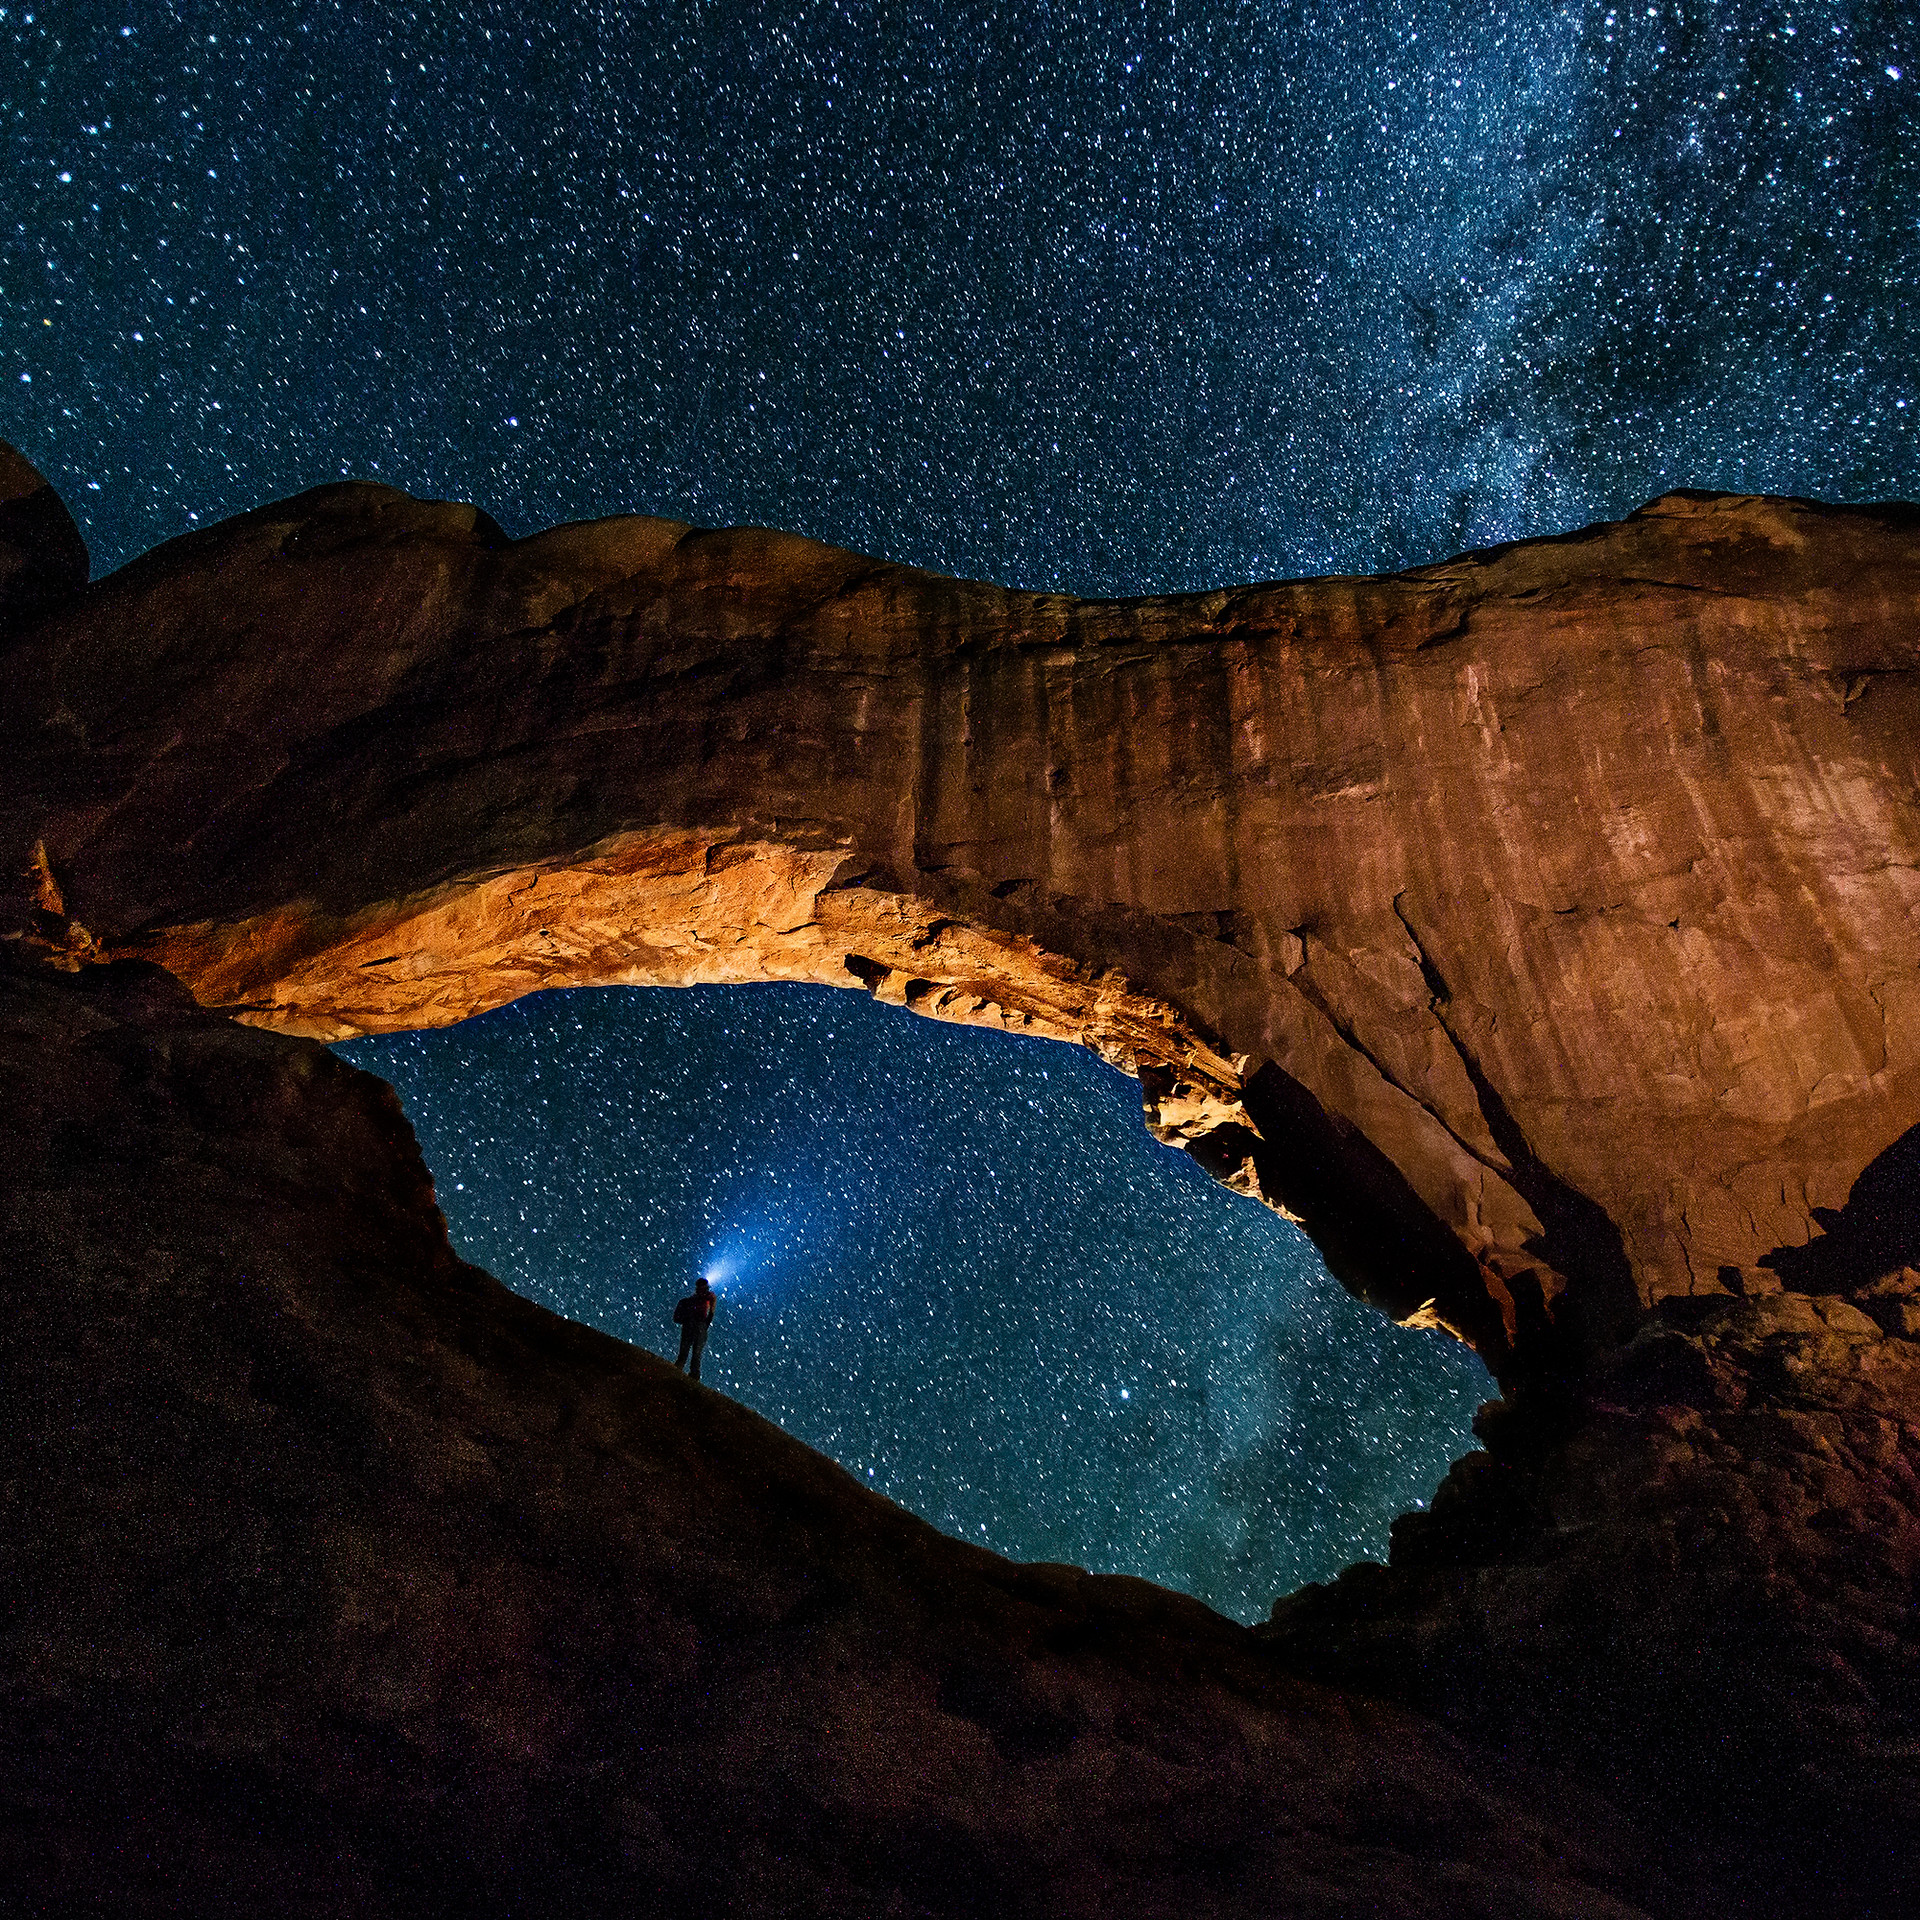 Milky Arch